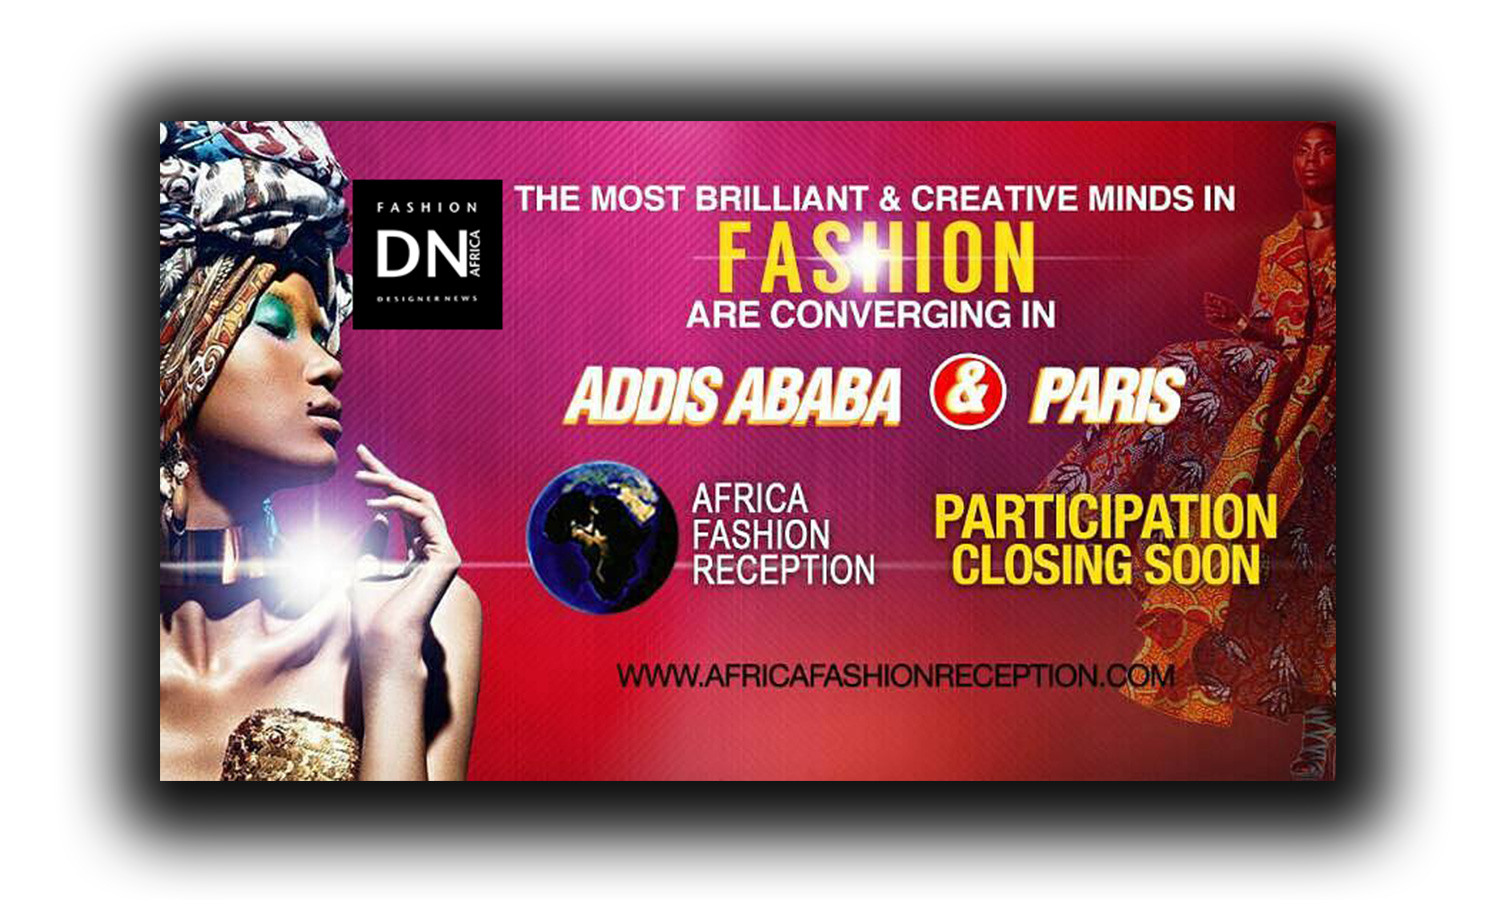 DNAFRICA-VISUAL-AFRICA-FASHION-RECEPTION-2017